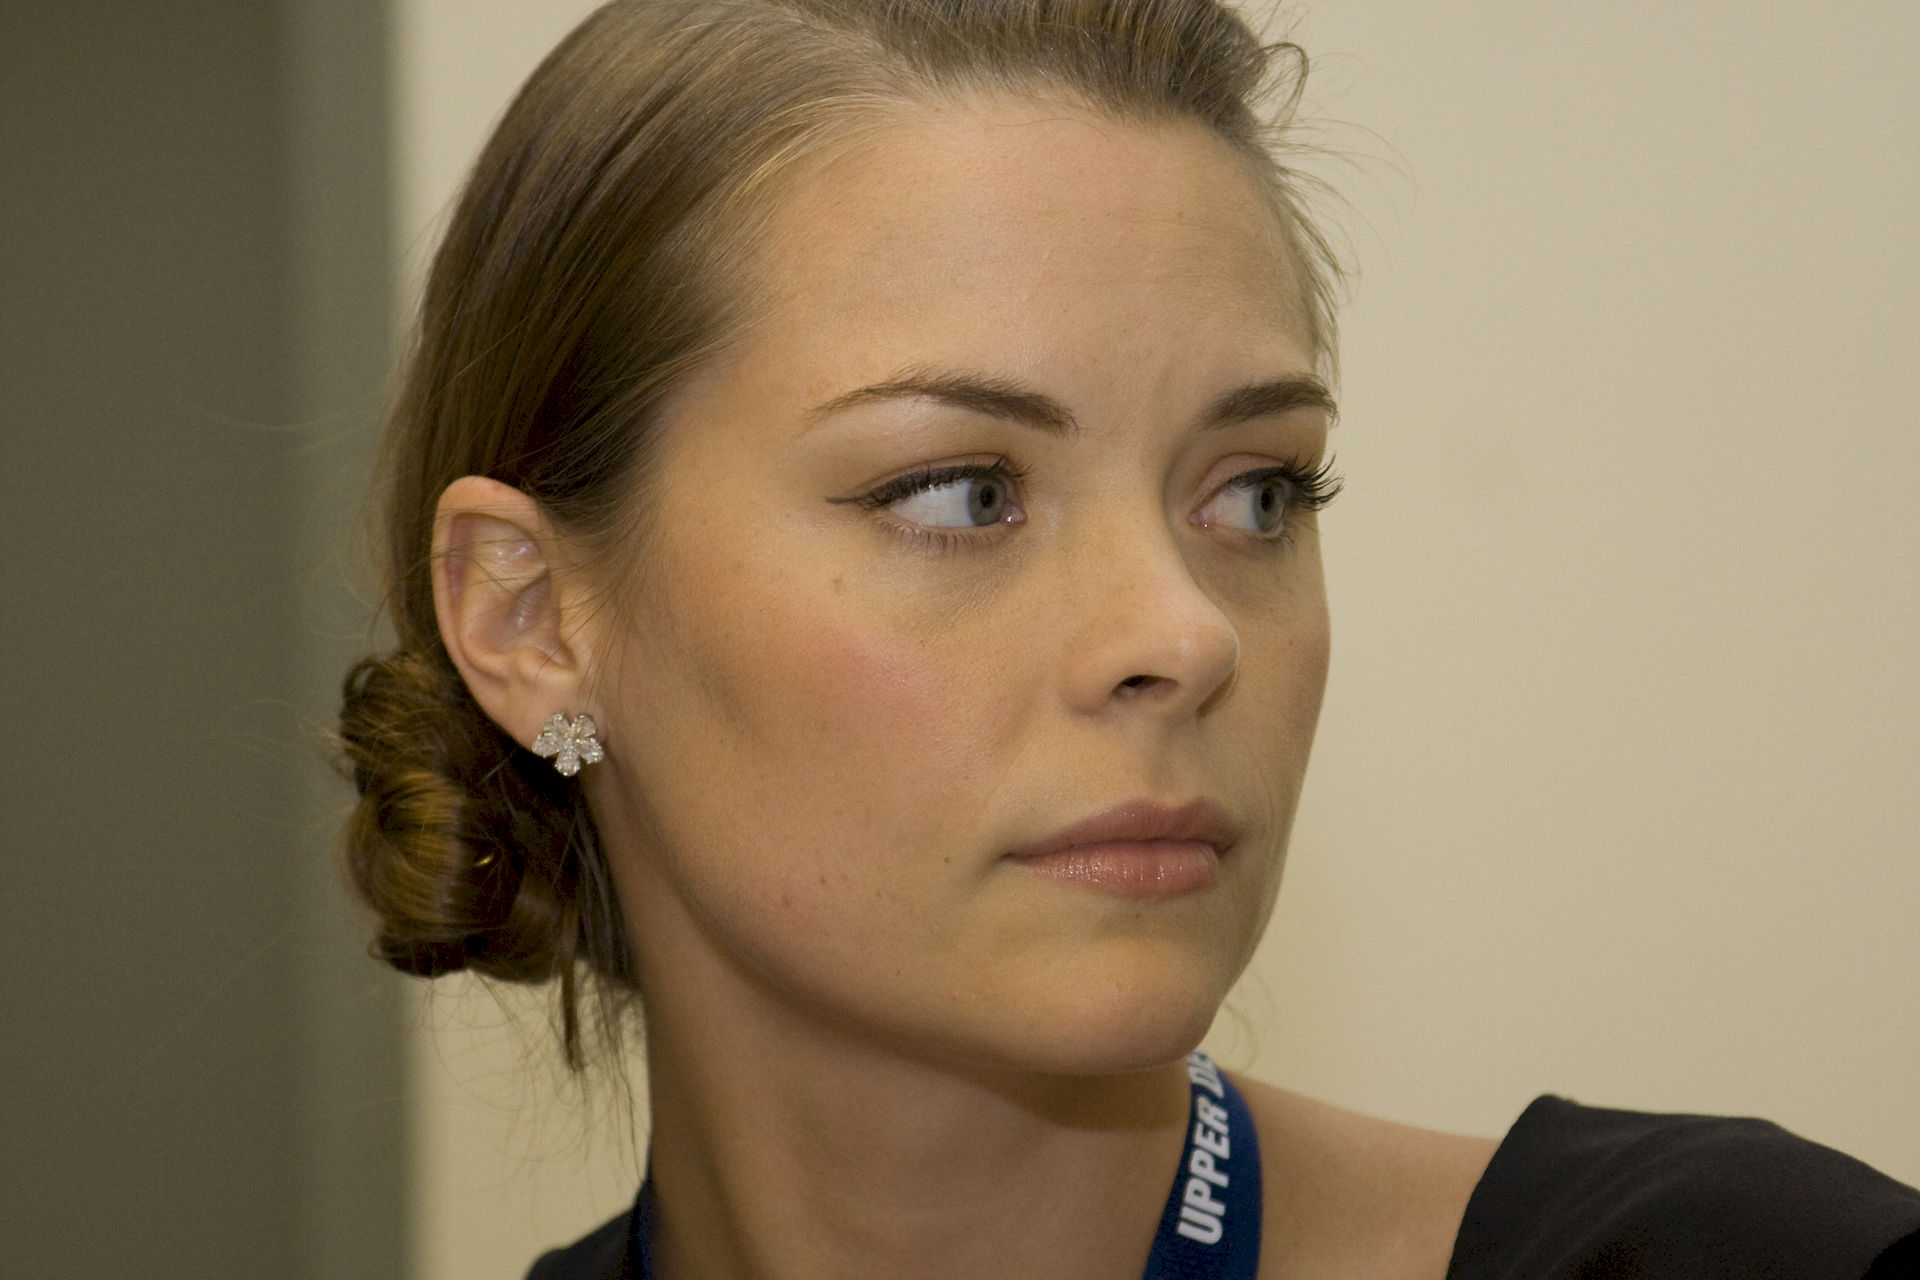 Photo of Jaime King: American actress and model